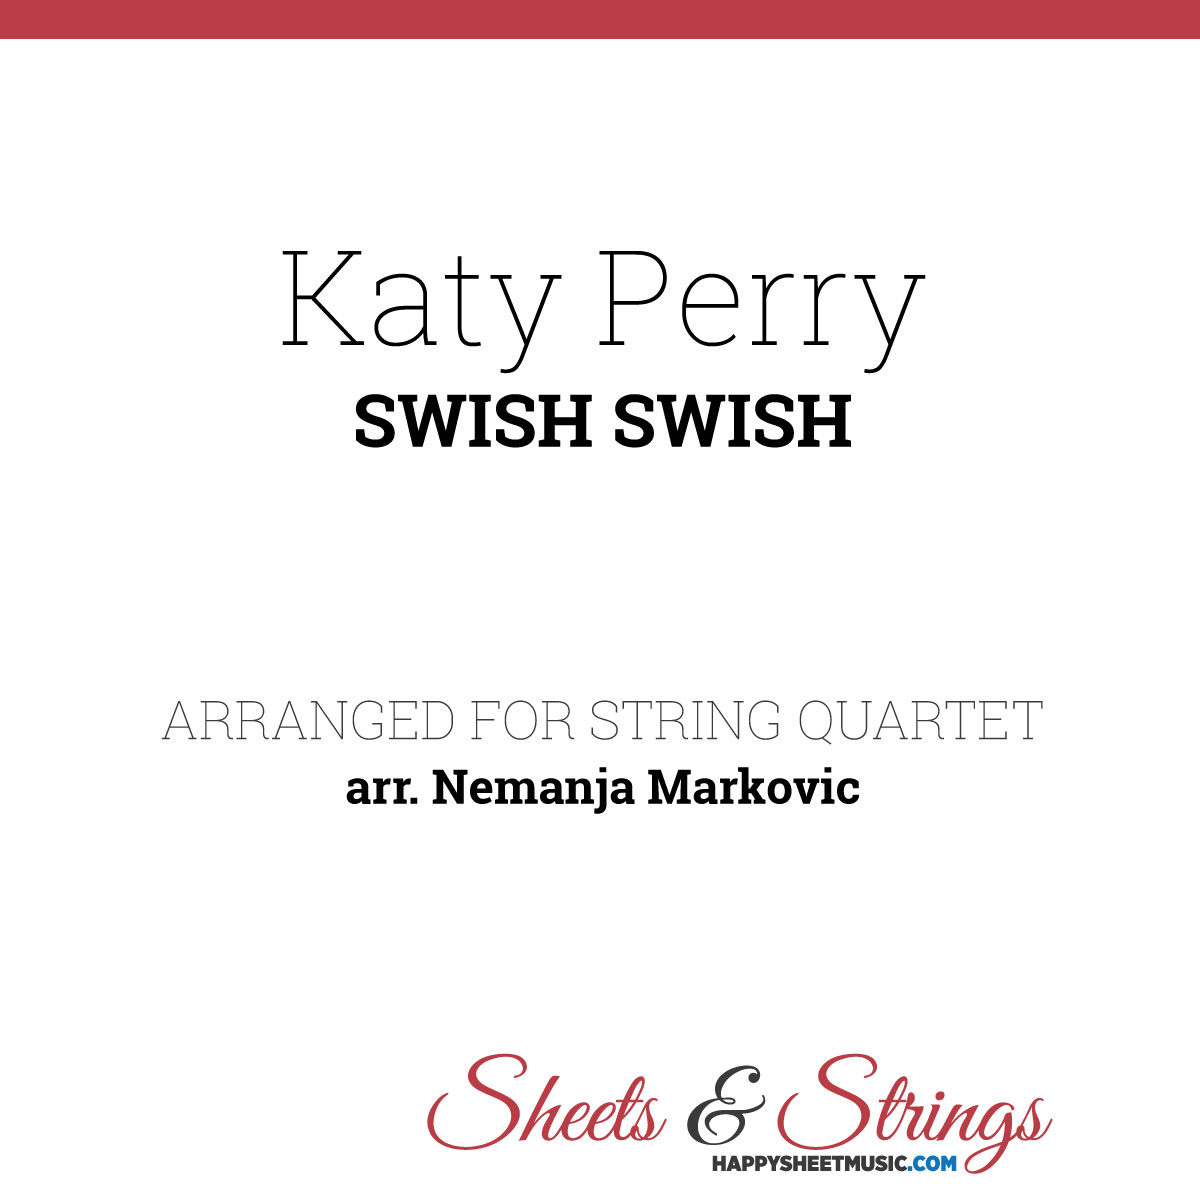 Katy Perry - Swish Swish - Sheet Music for String Quartet - Music Arrangement for String Quartet